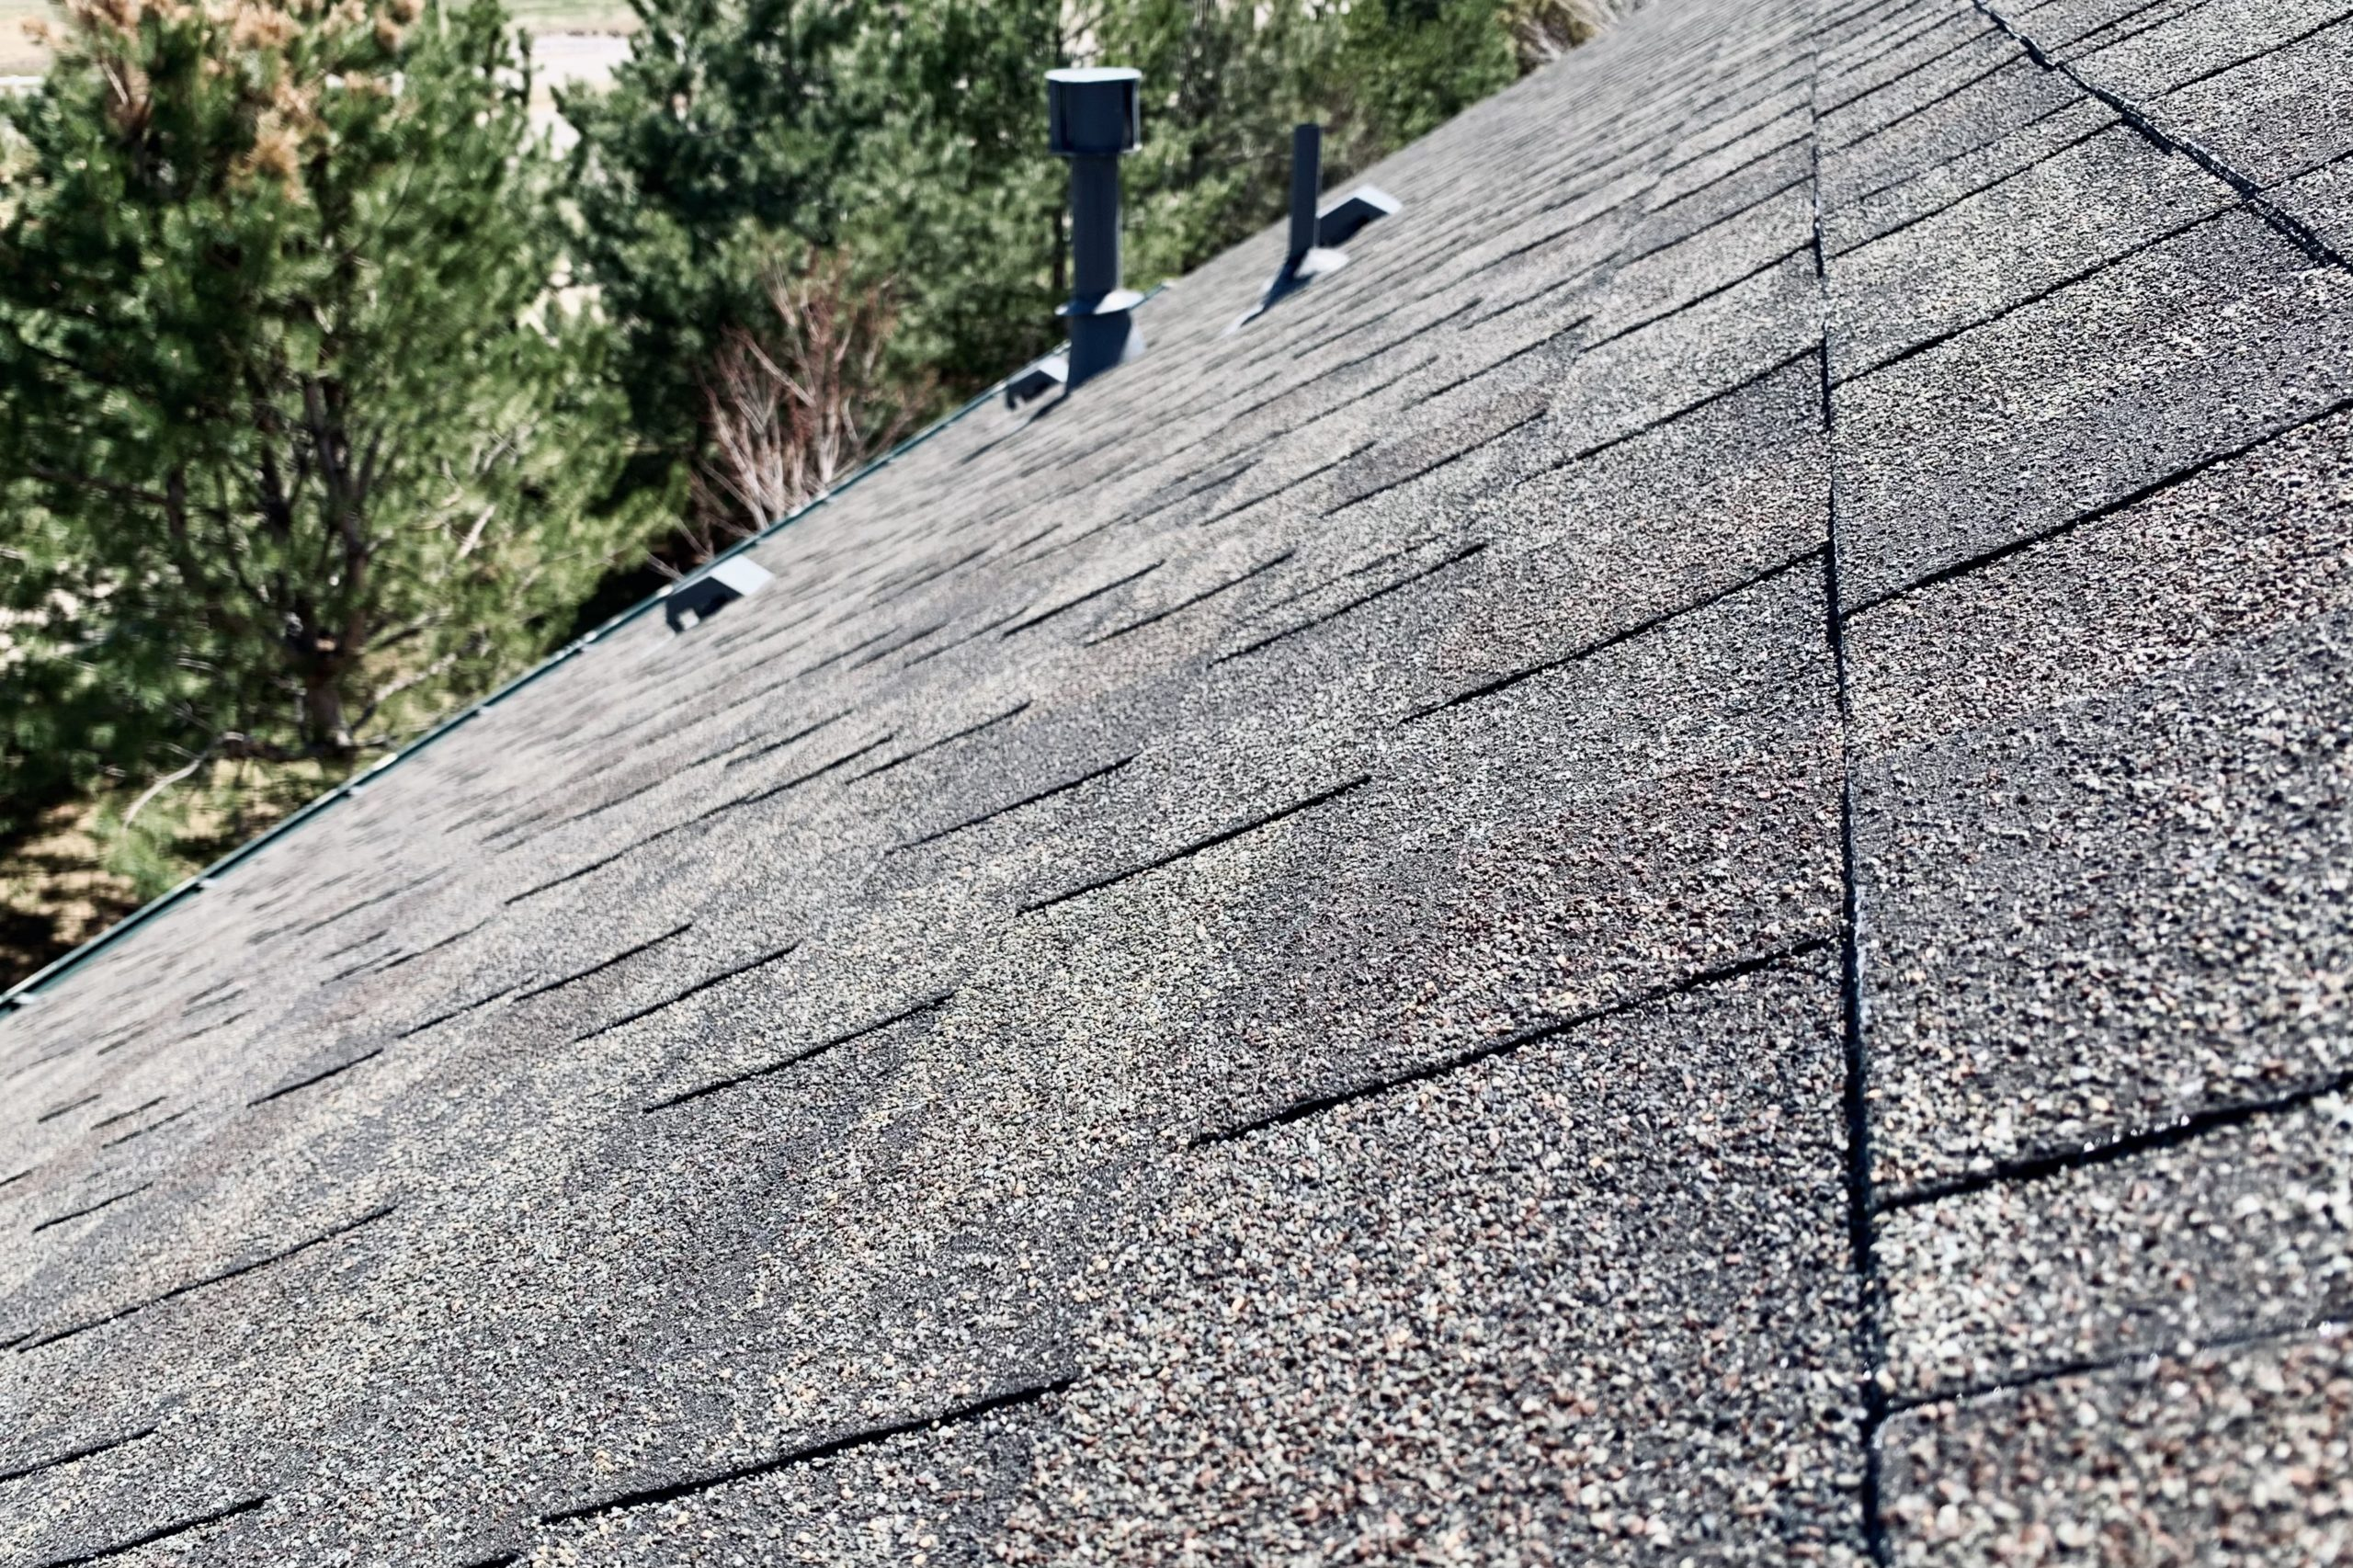 Worn shingles from age and heat